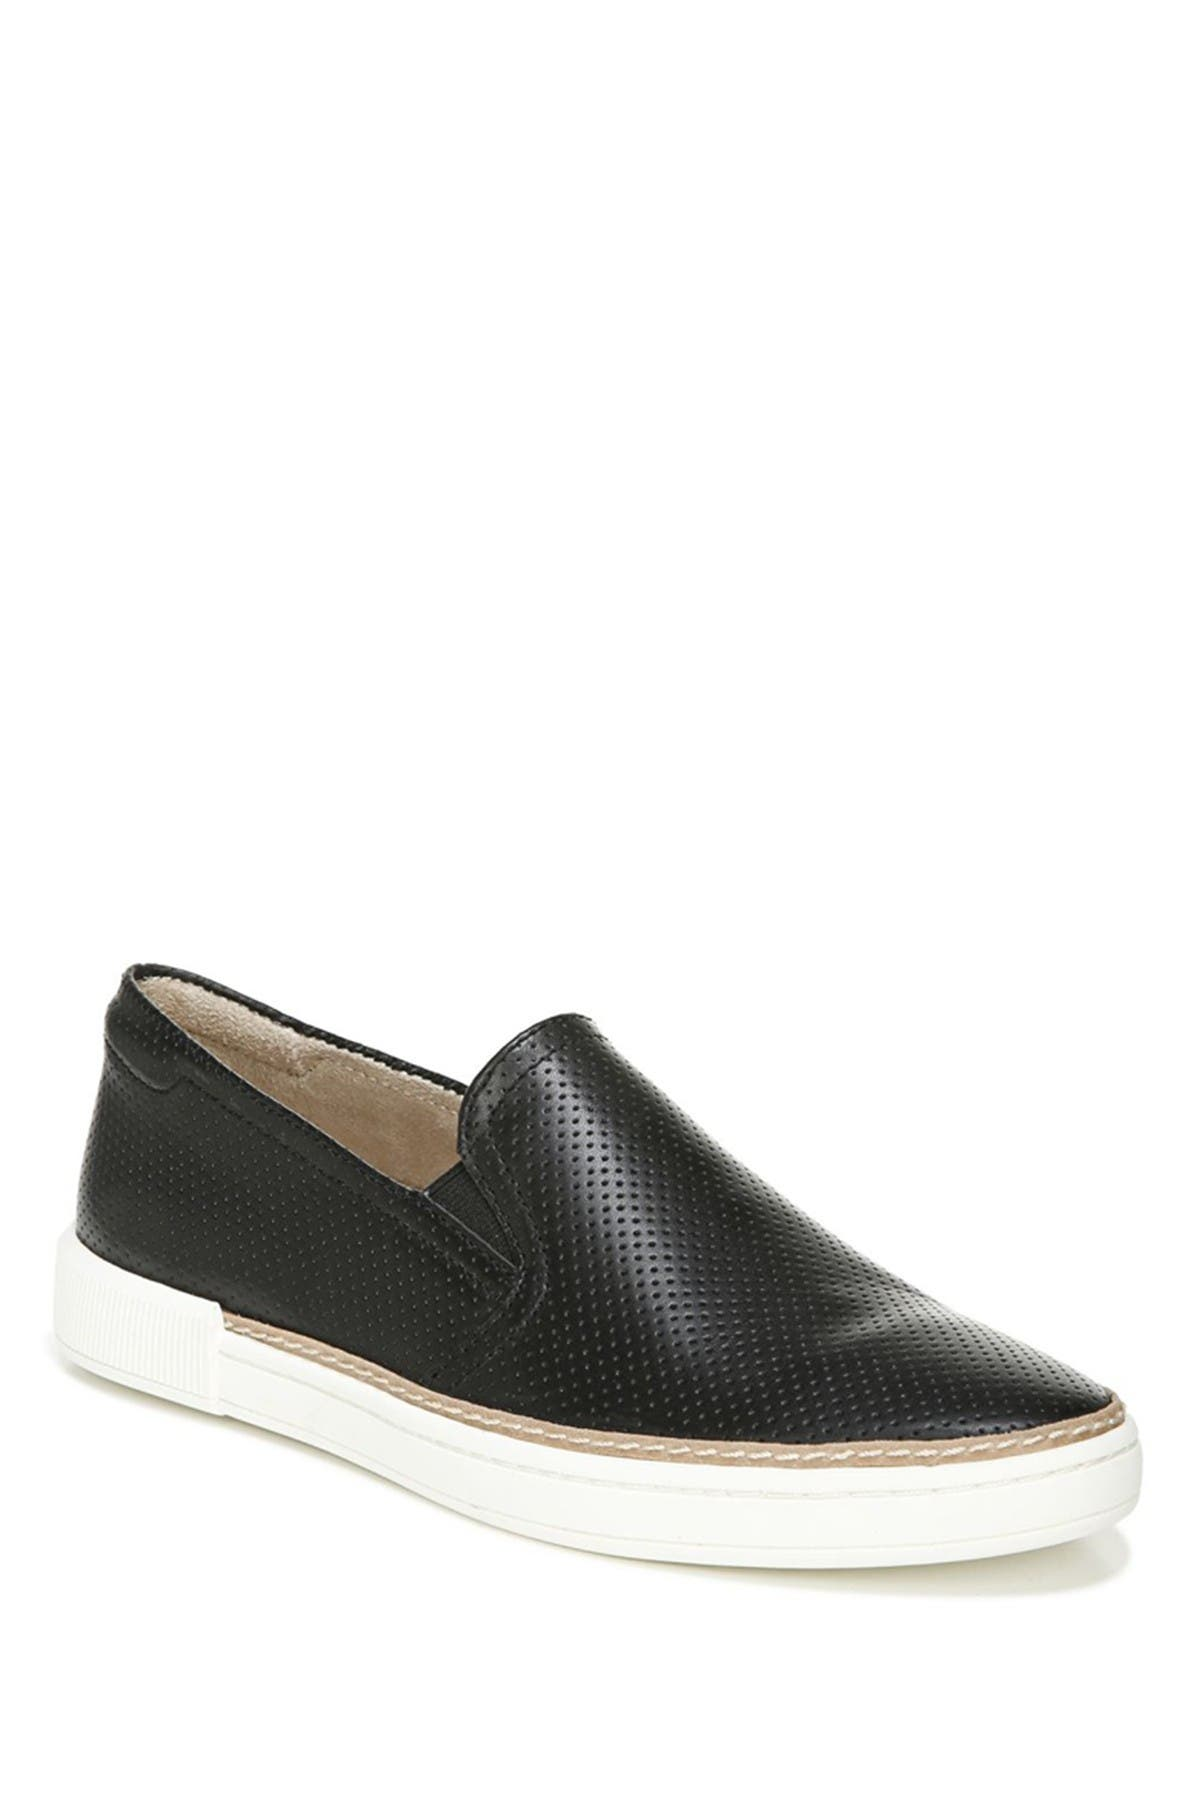 Image of Naturalizer Zola 3 Perforated Slip-On Sneaker